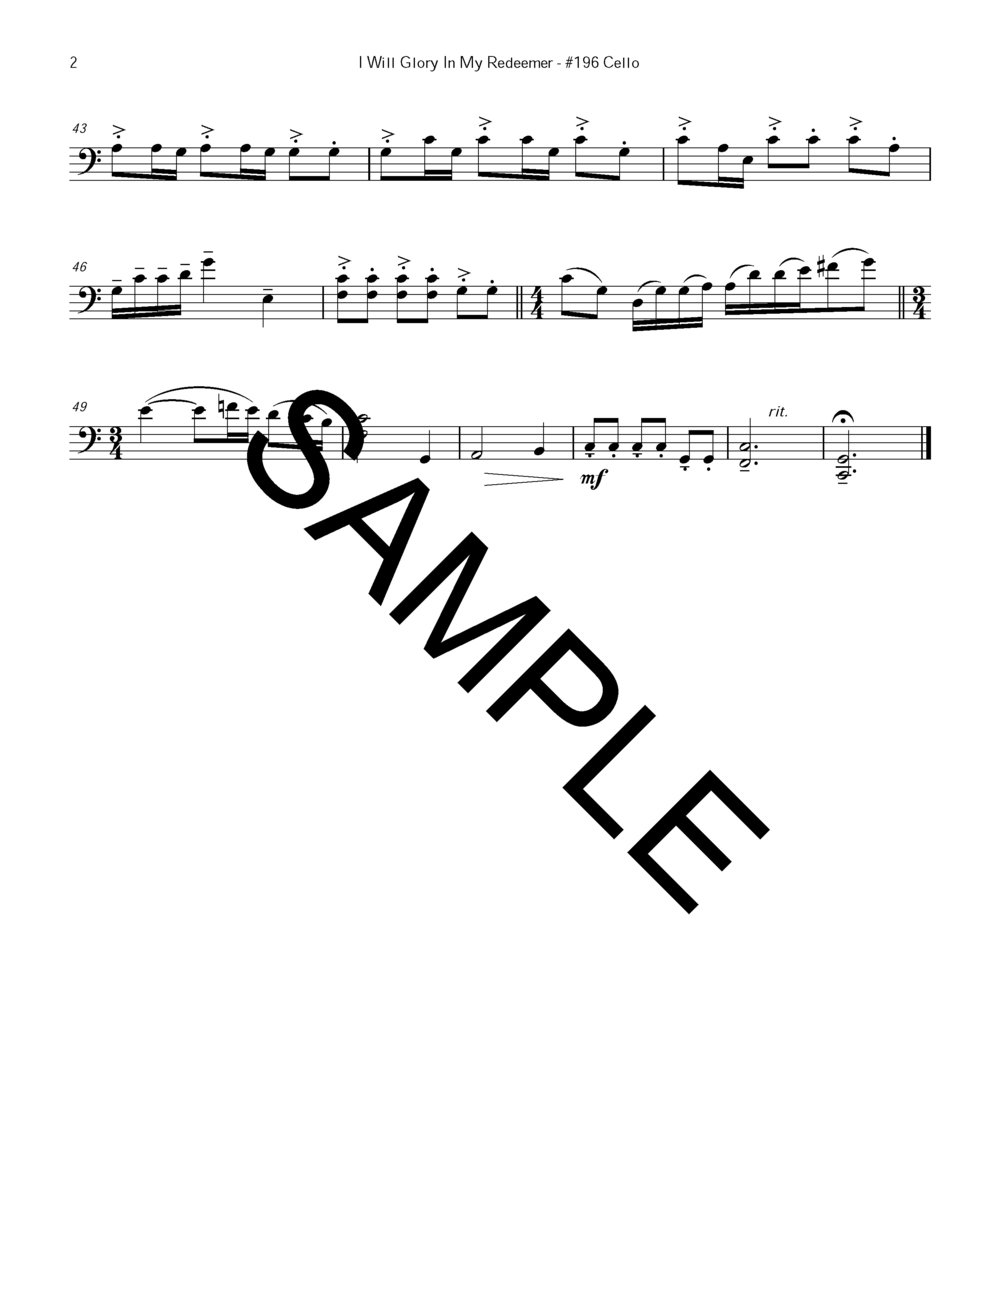 Sample I Will Glory in My Redeemer #196 Strngs Ob Piano Chrd Chrt Orgn M Rice arr_Page_08.jpg